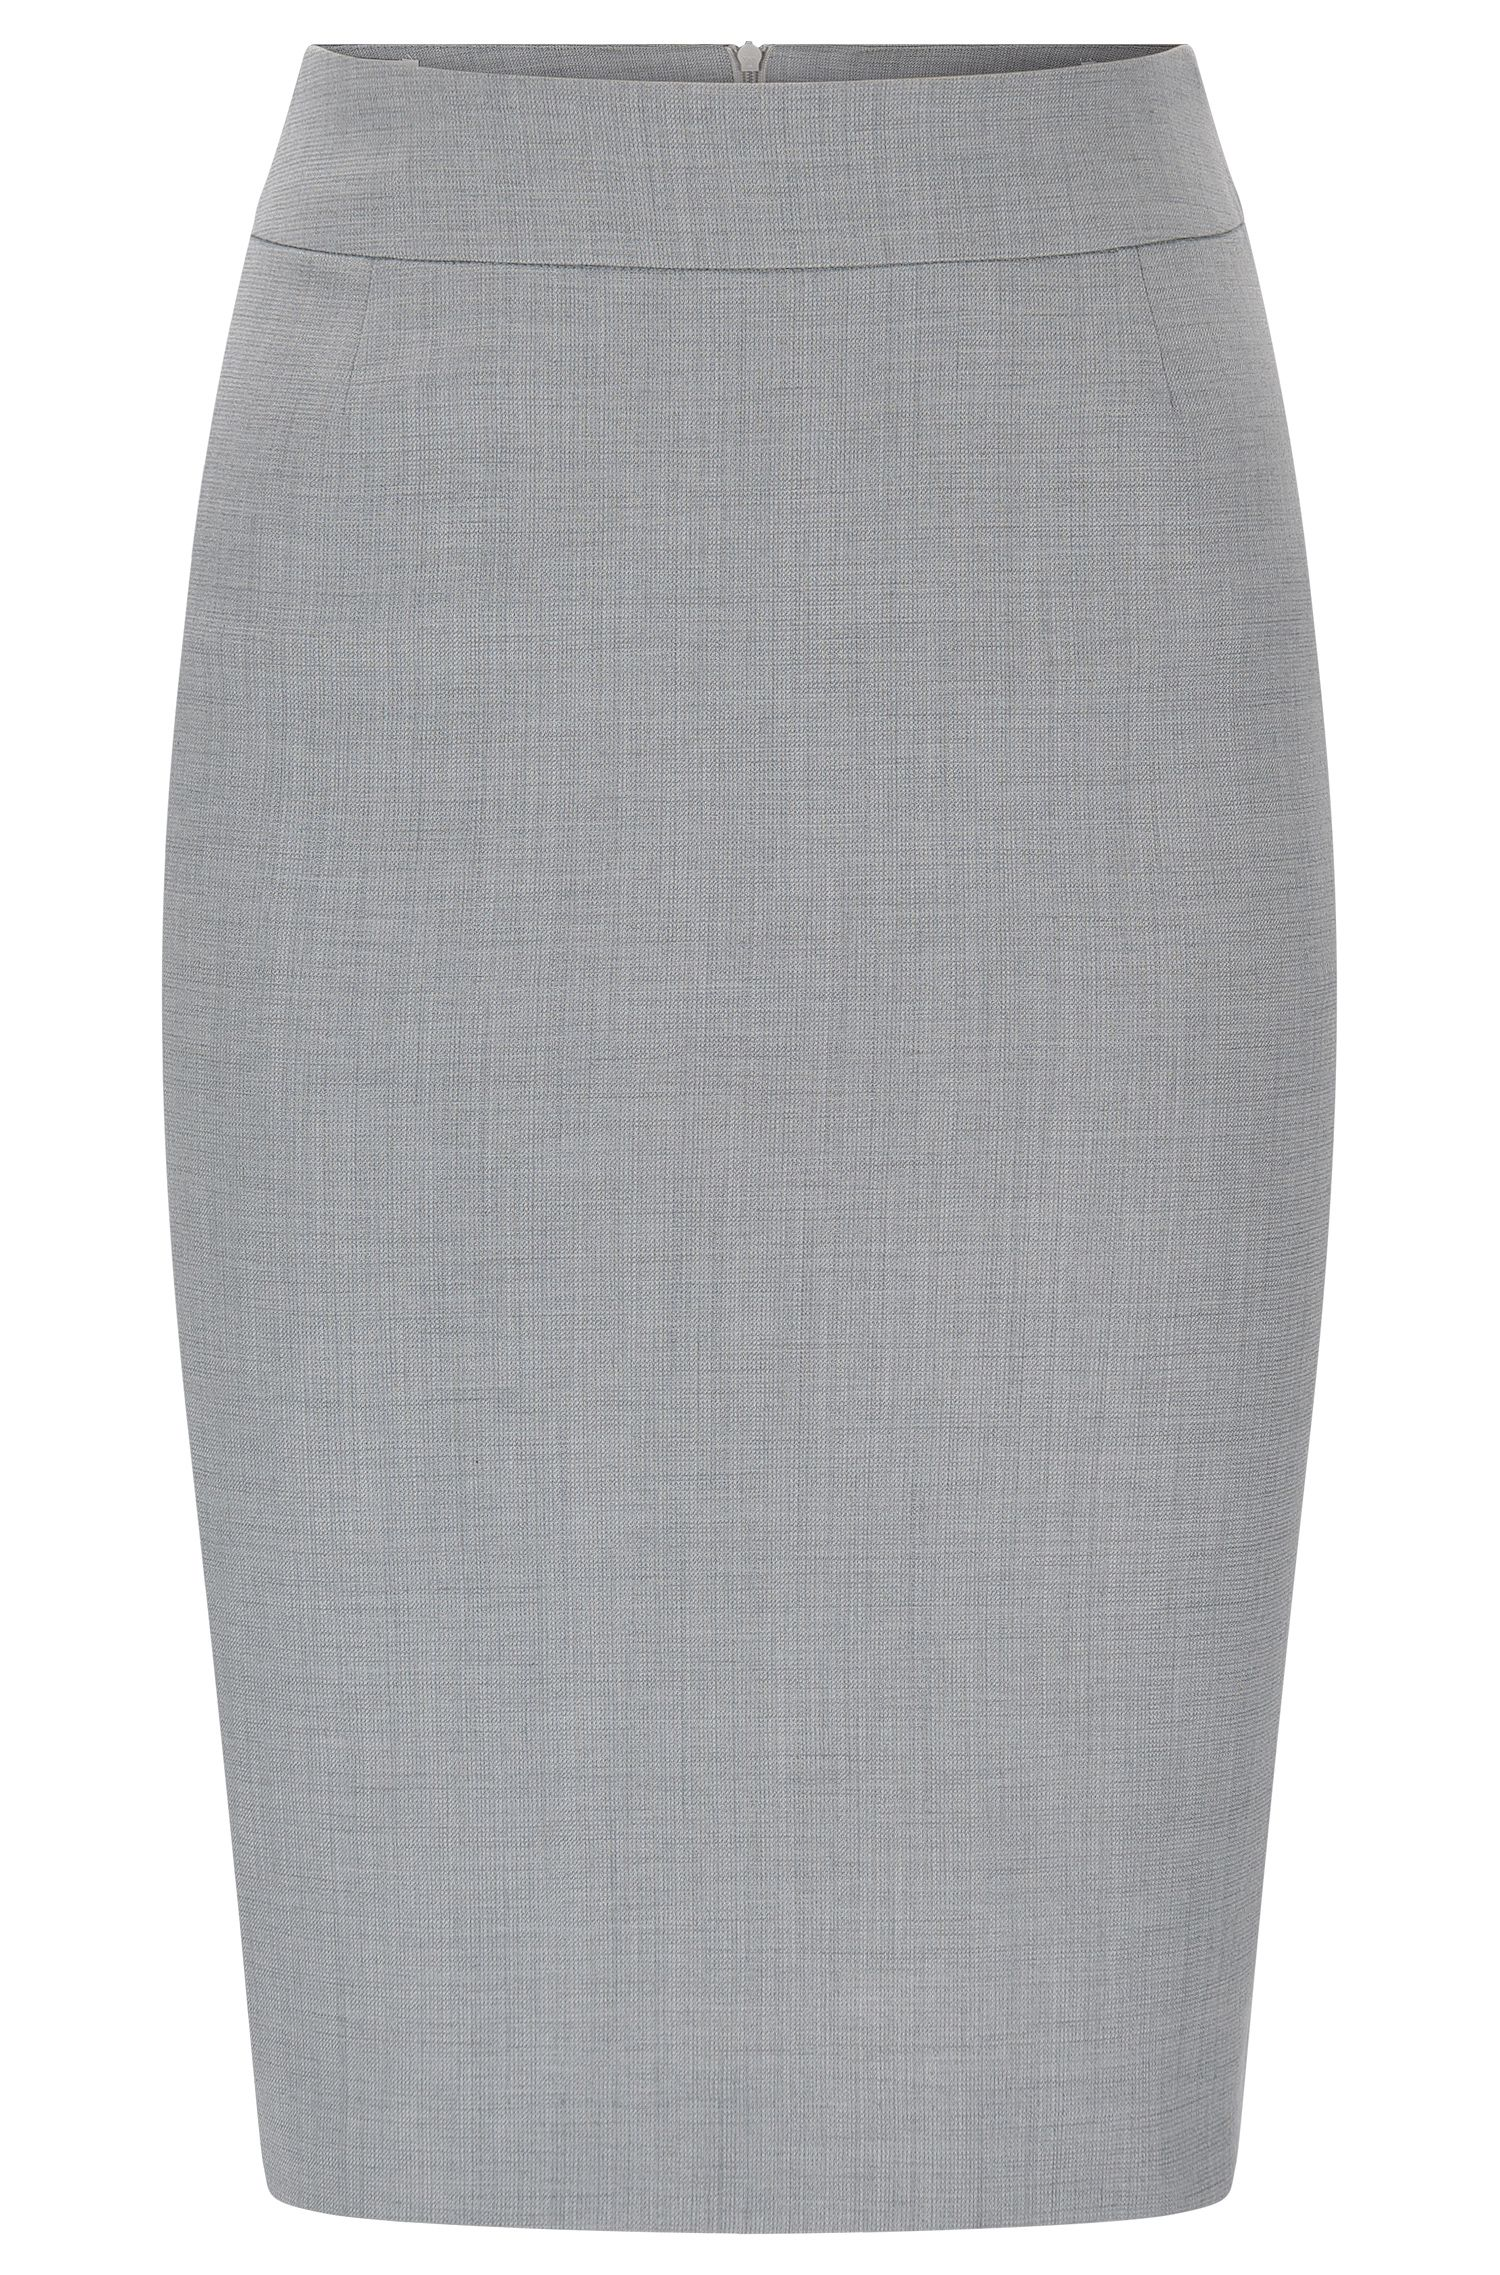 Pencil skirt in textured stretch new wool: 'Vimesa'